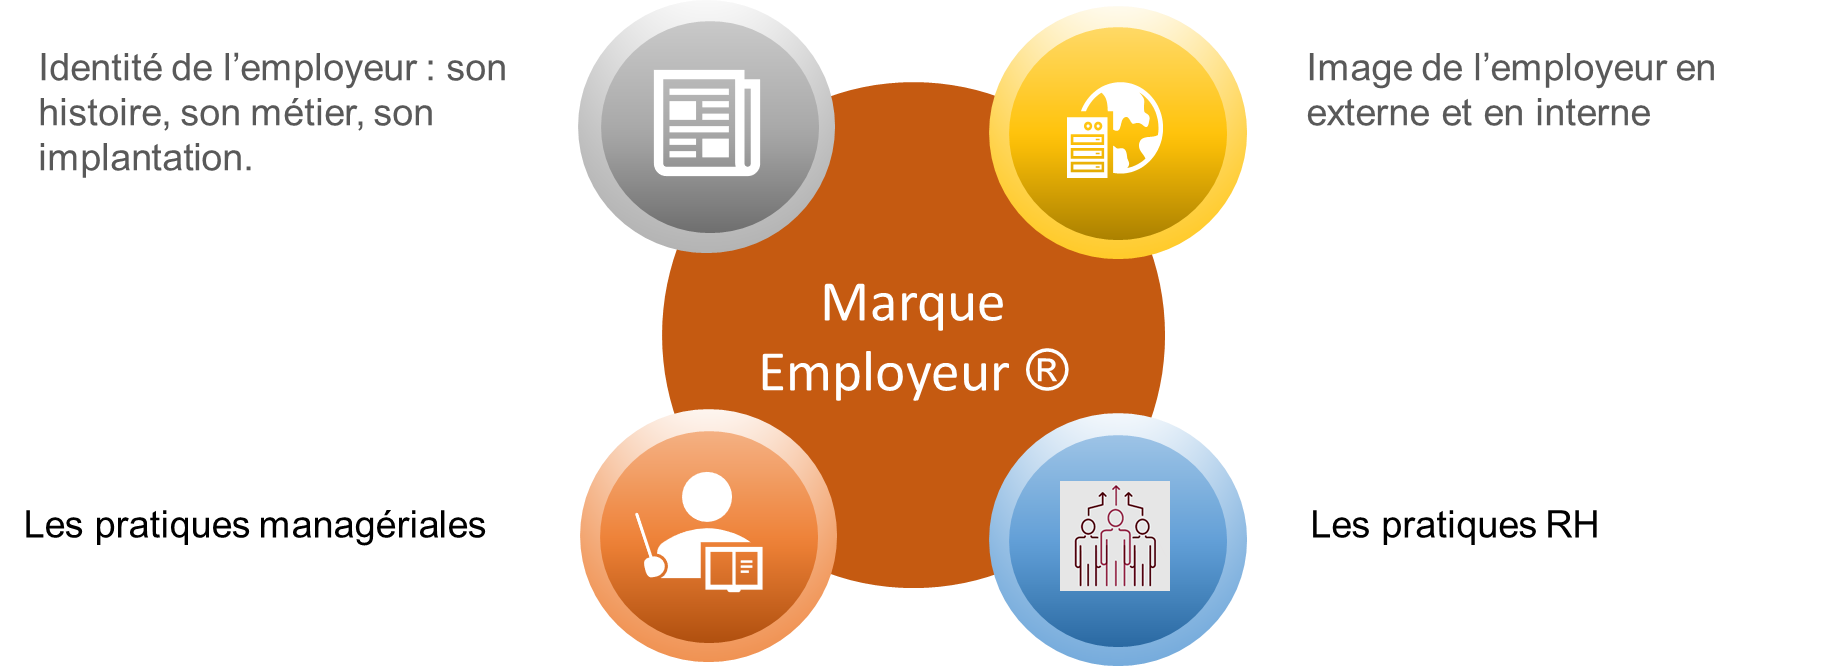 RH TO YOU - Marque employeur